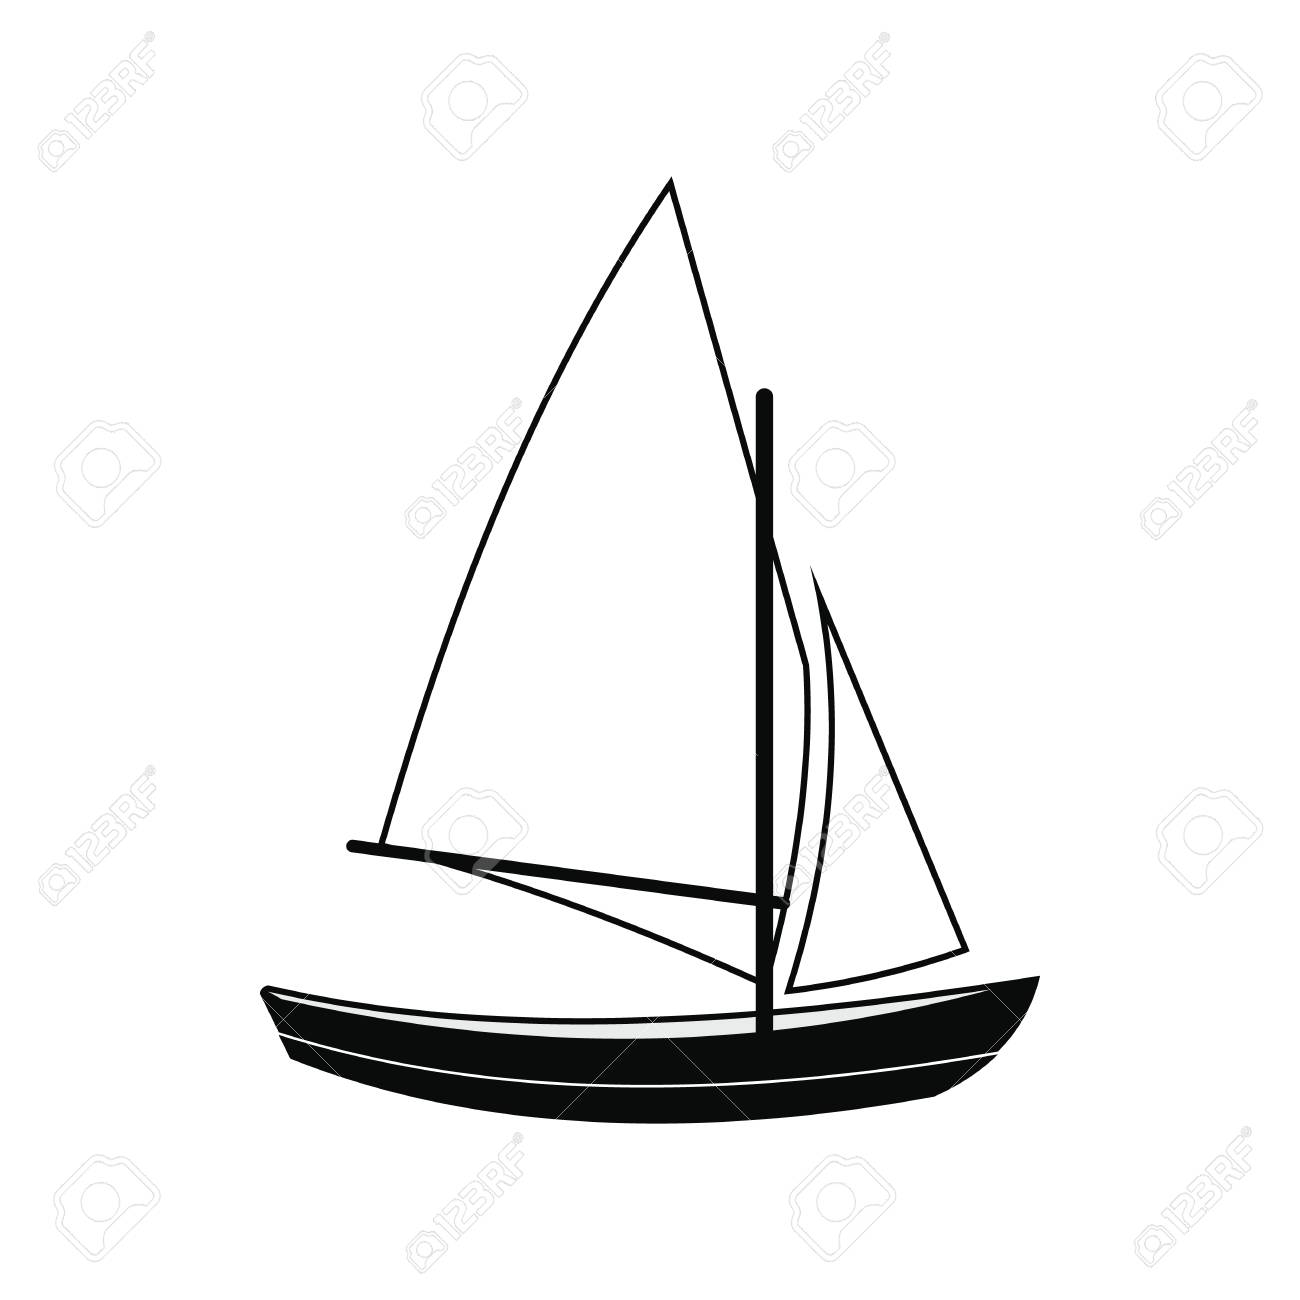 Ship yachts black simple icon isolated on white background.